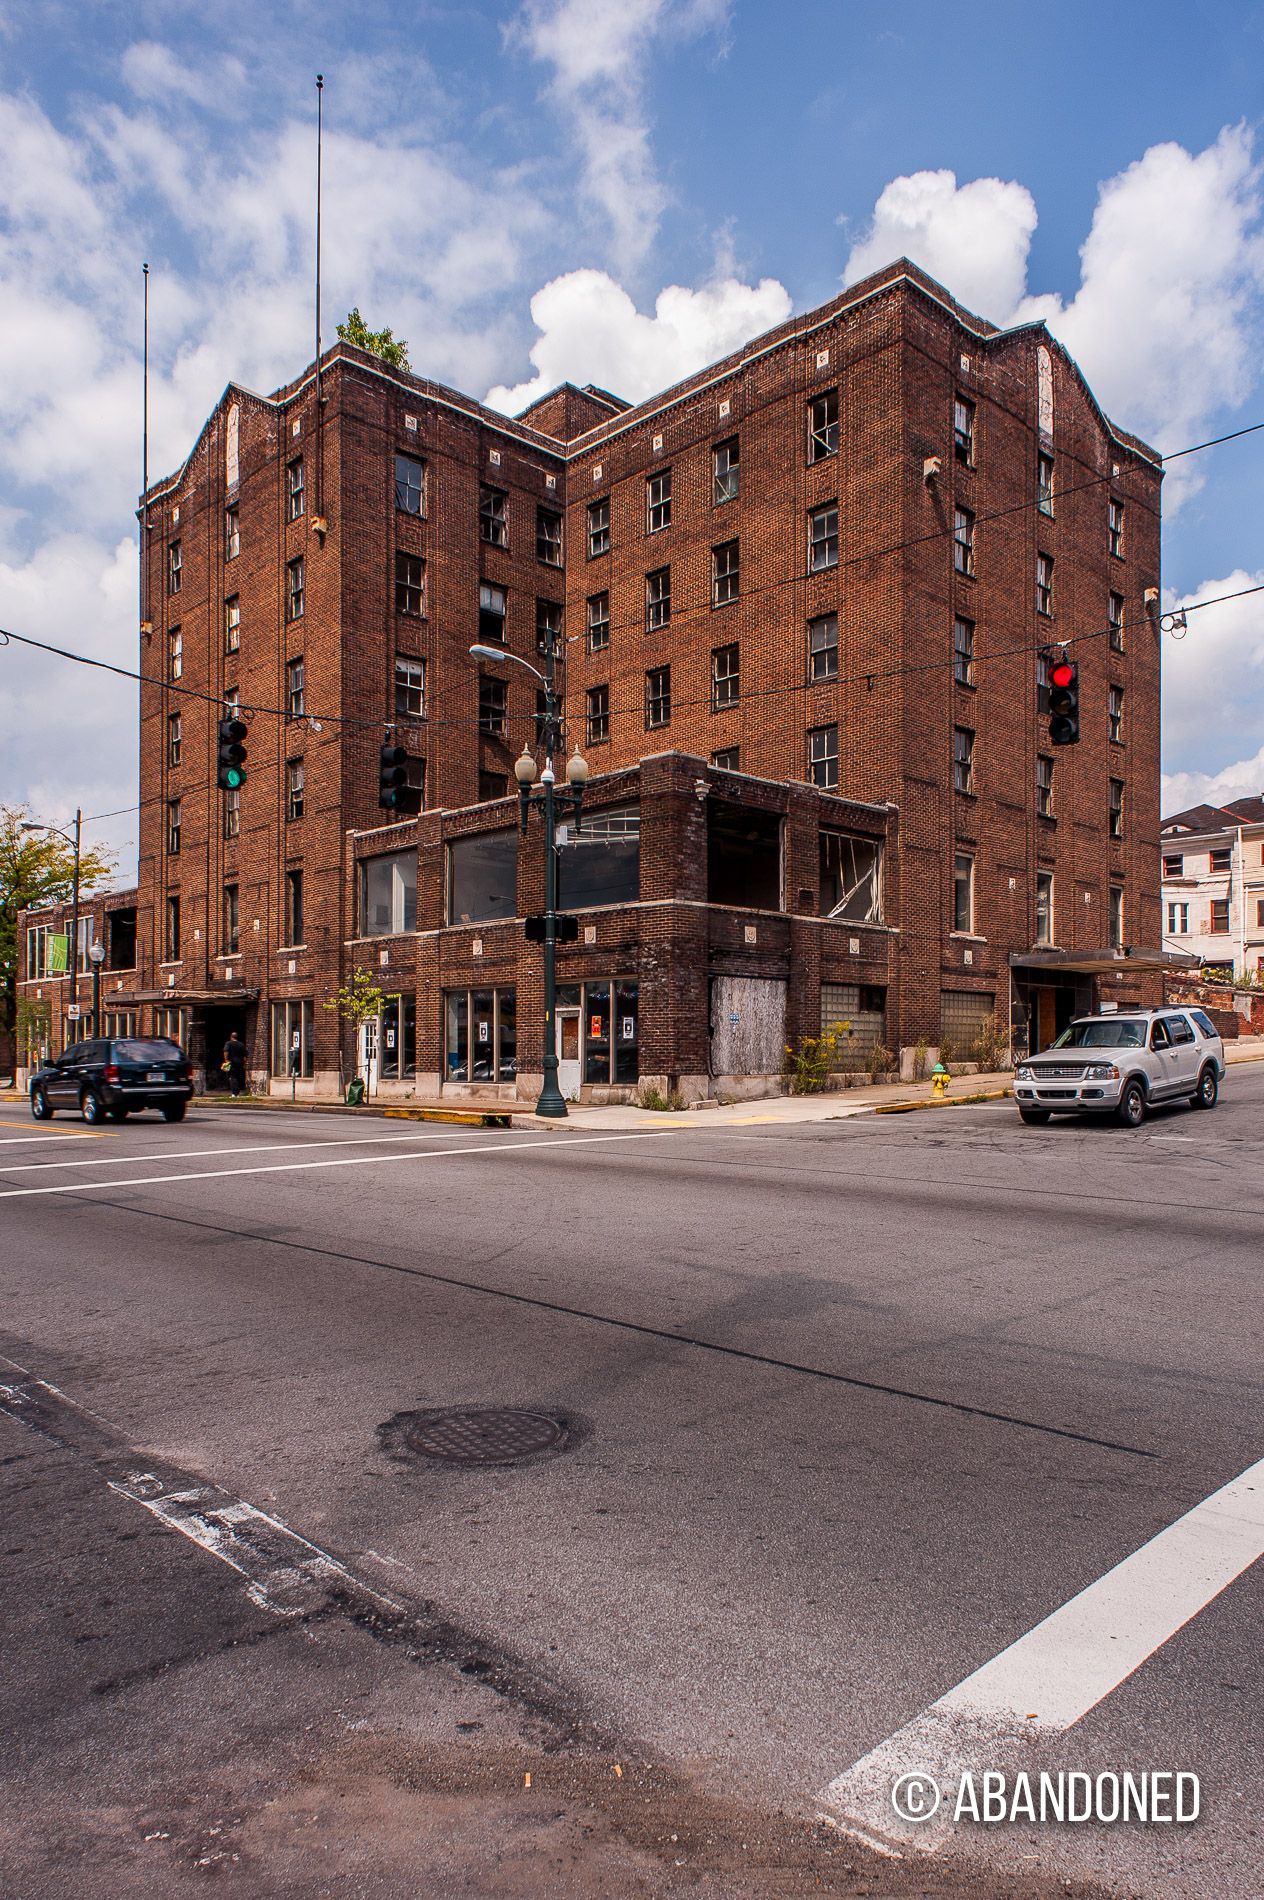 hotels connection watson article lincoln with will william hotel to talking boast ar in il sign s pittsfield